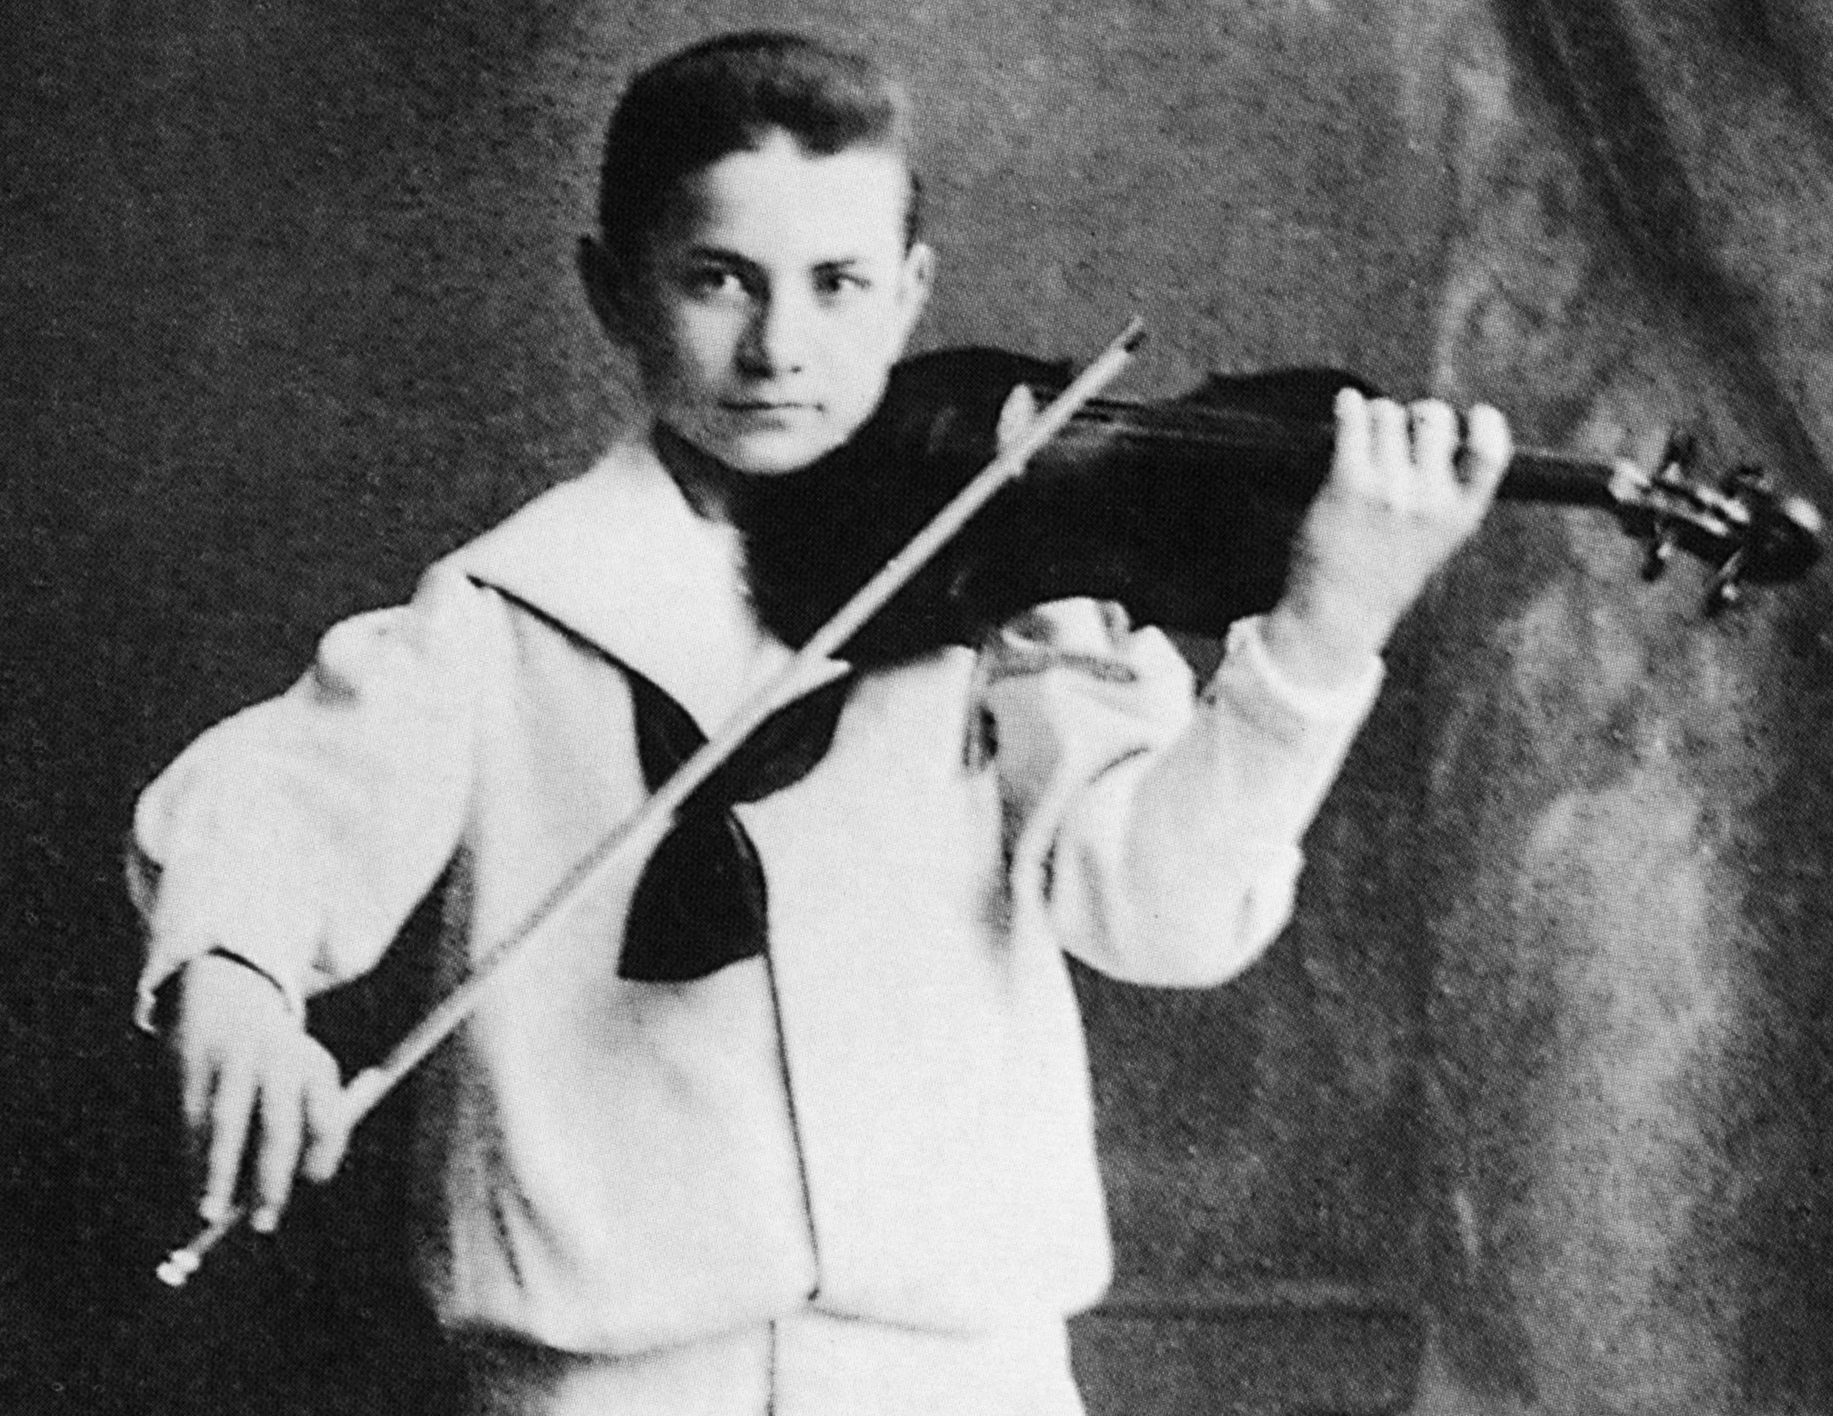 Who exactly was the founder of the Russian Violin School? A